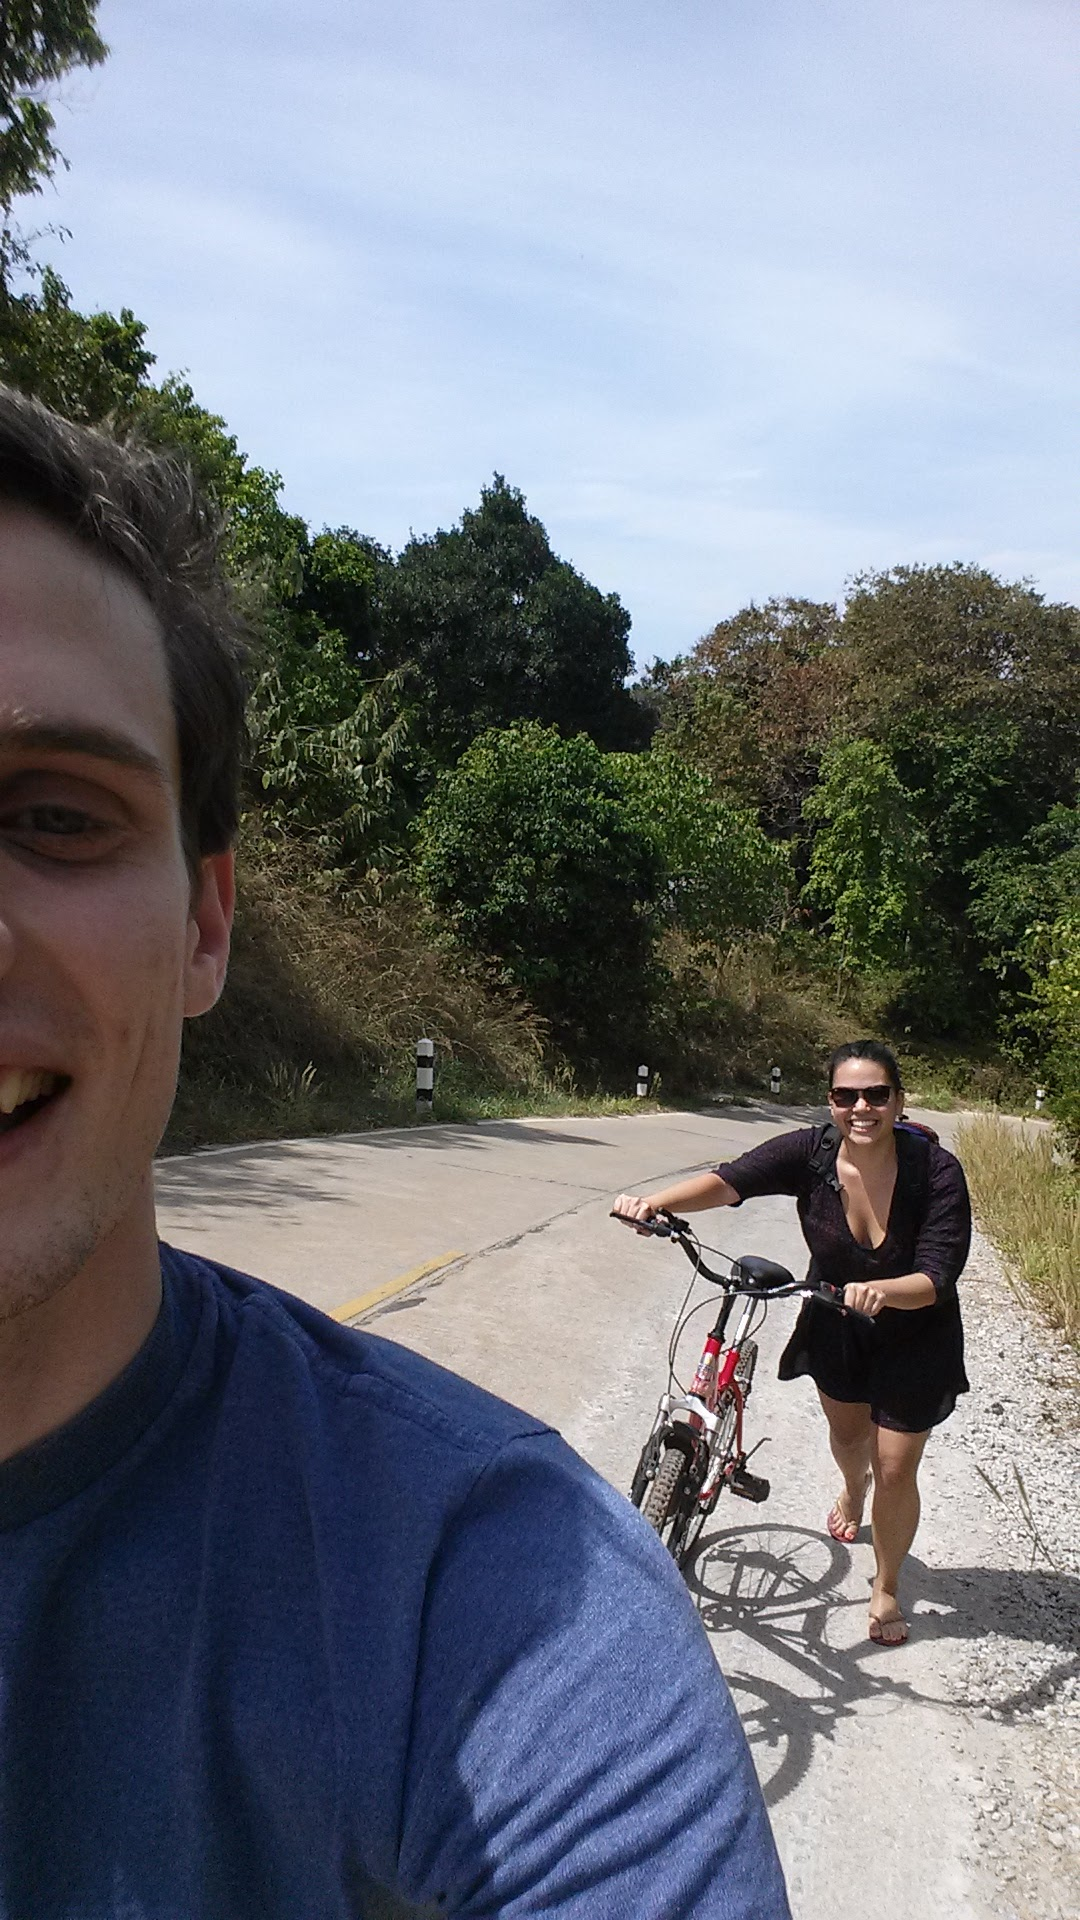 for our third date, I flew to Singapore to meet Gill and we went to Koh Lanta in Thailand. Perfect!